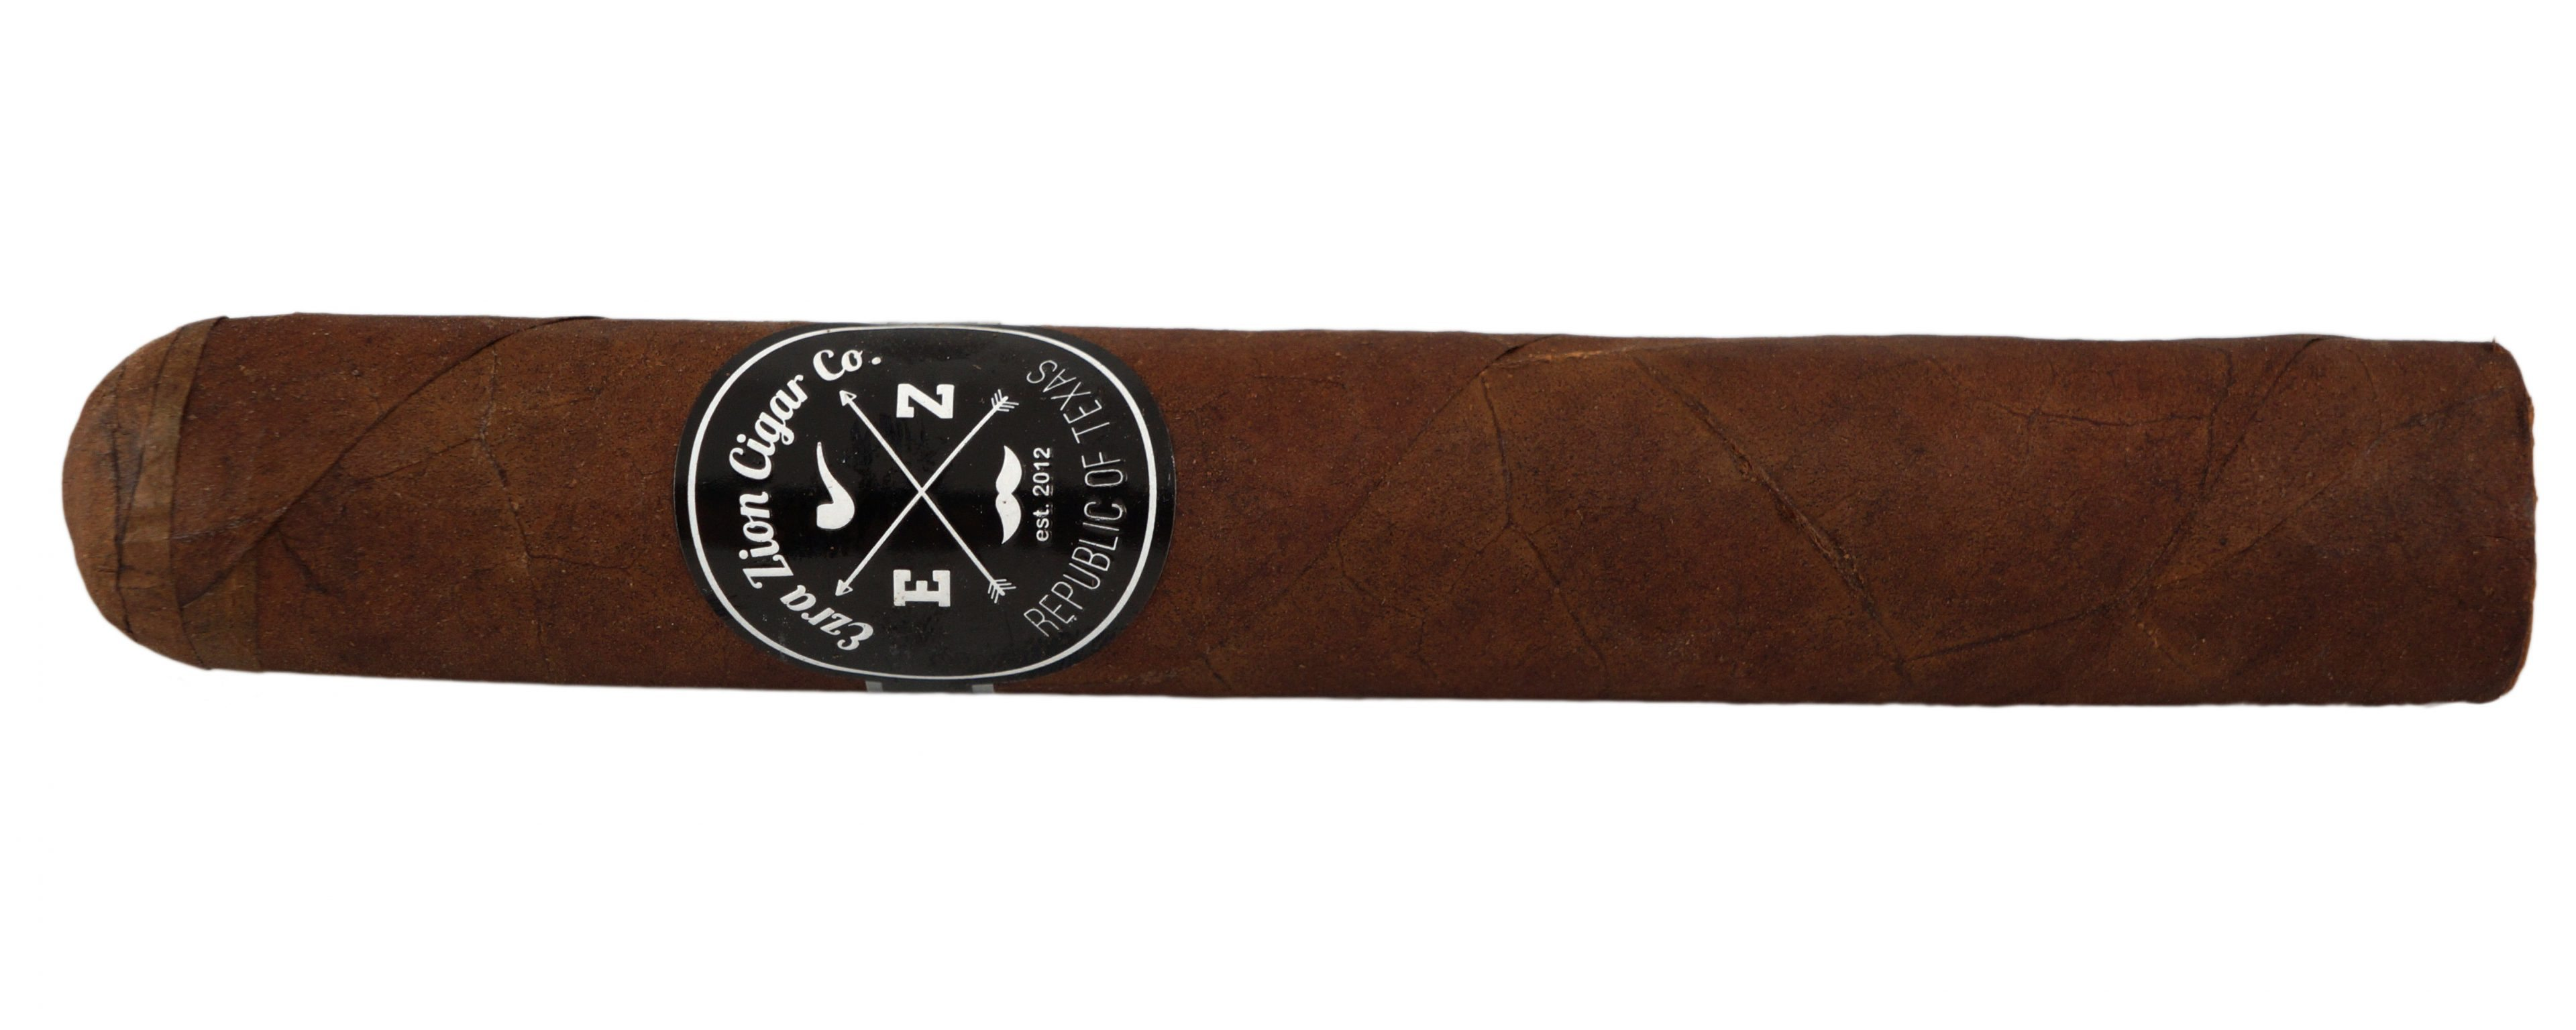 Blind Cigar Review: Ezra Zion | All My Exes Robusto